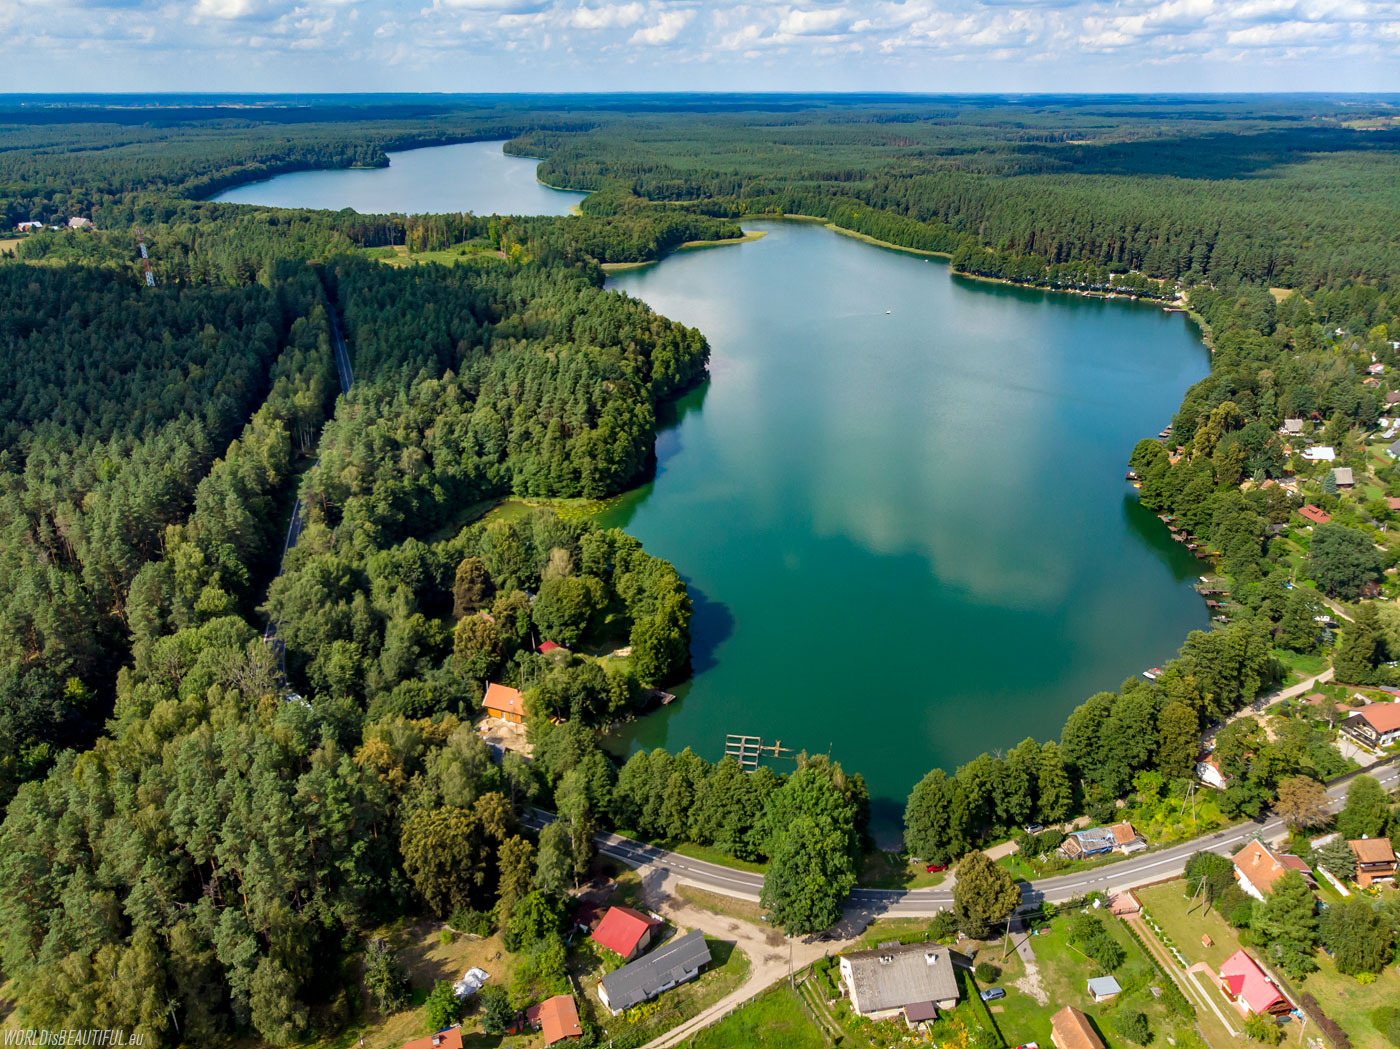 Dluzek Lake for holiday makers